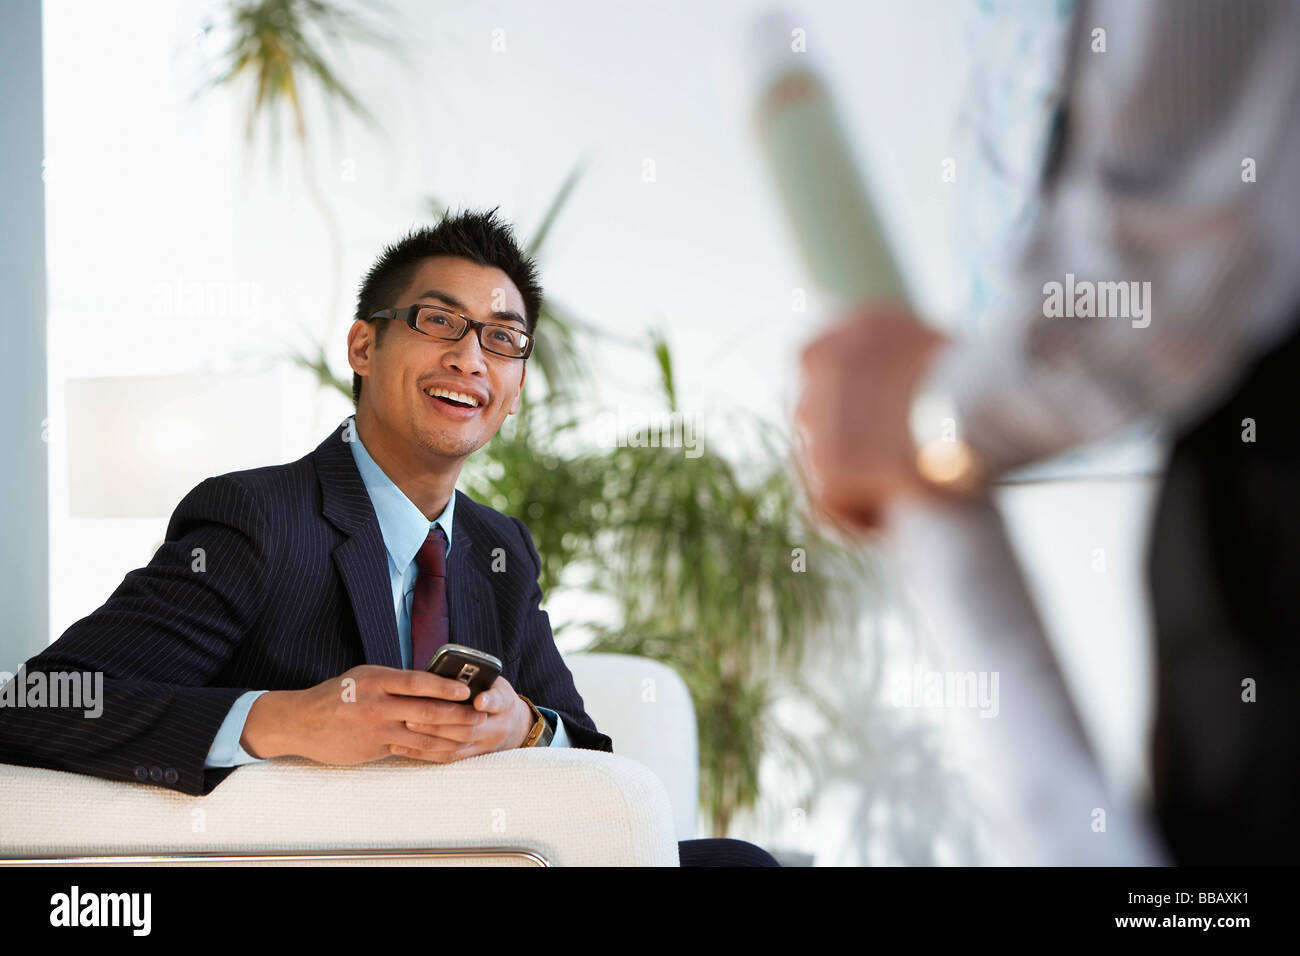 Business colleagues meet in al lobby - Stock Image